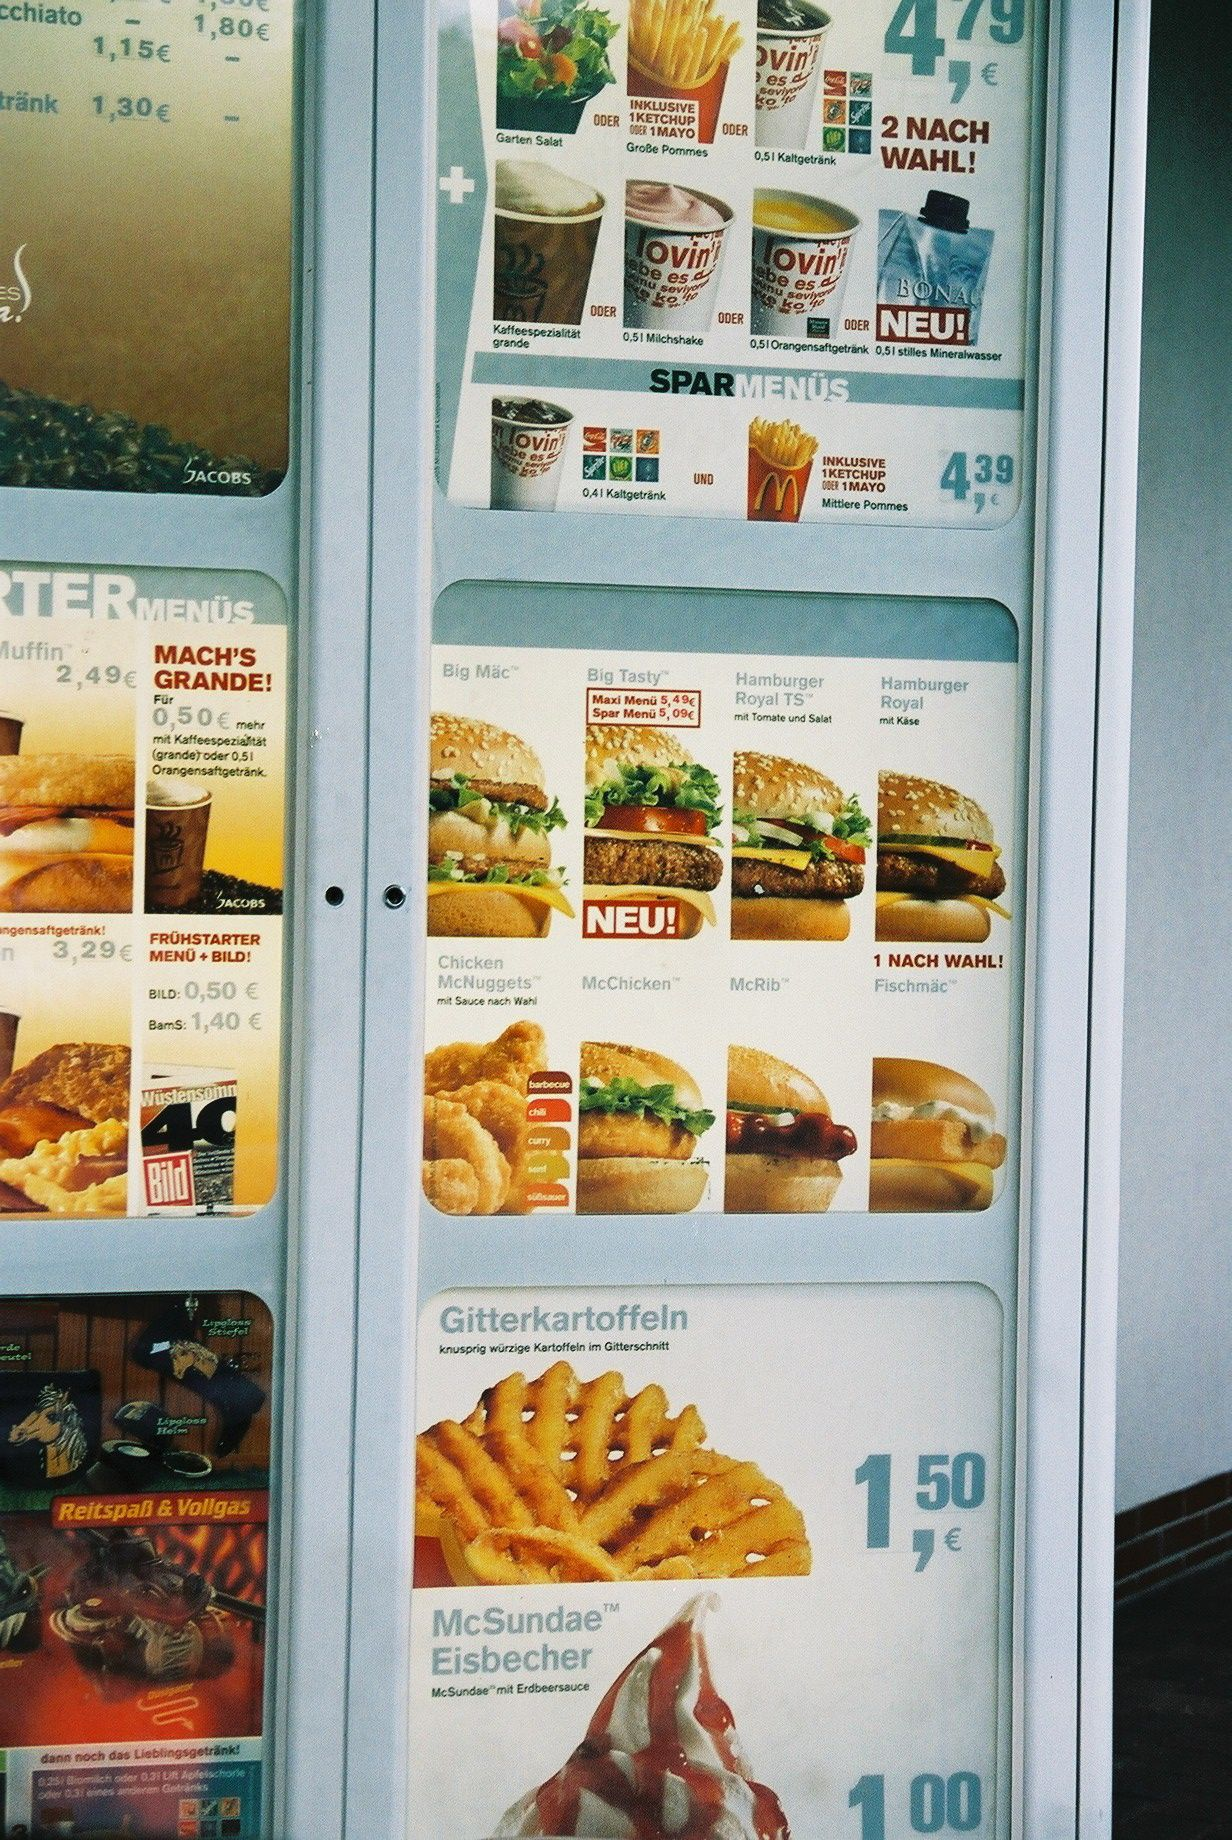 Mcdonalds In Germany Fast Food Items Mcdonald S Germany Food